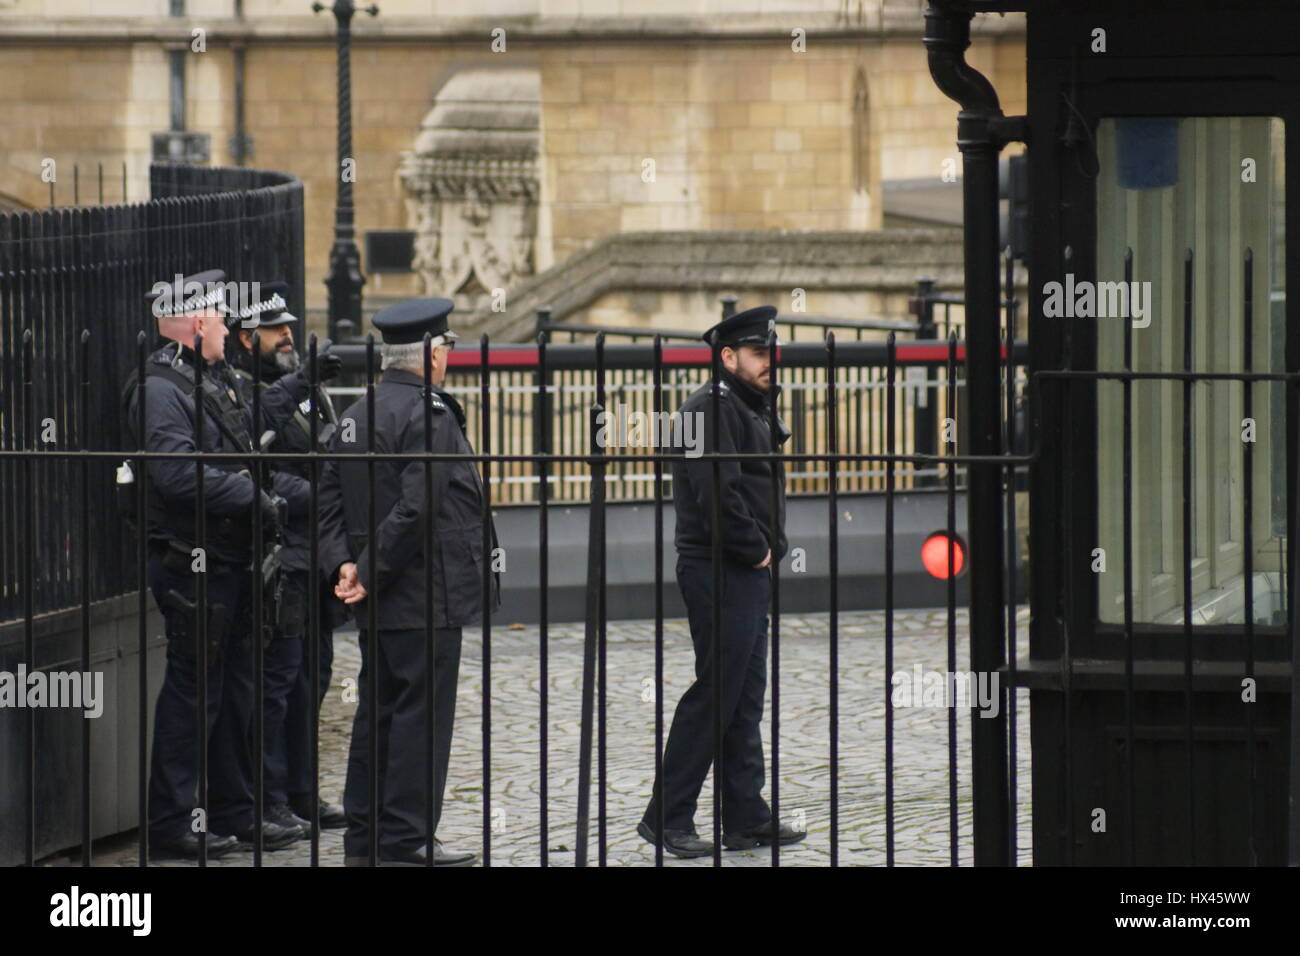 London, UK. 23rd Mar, 2017. Armed police at the scene of the murder. The scene outside the Houses of Parliament - Stock Image